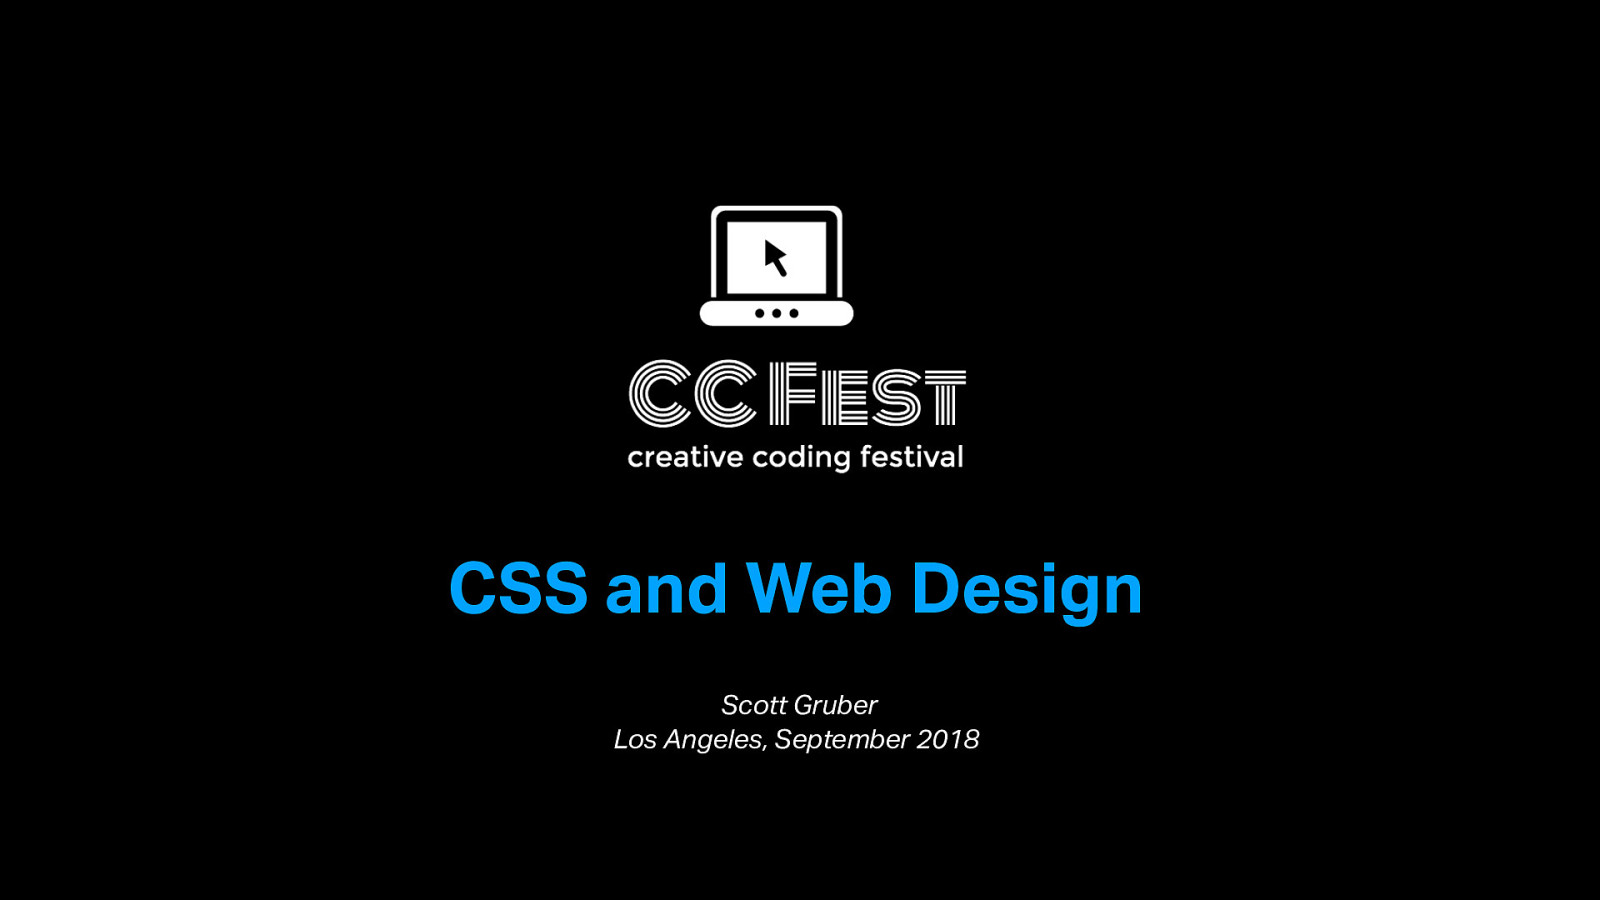 CSS and Web Design